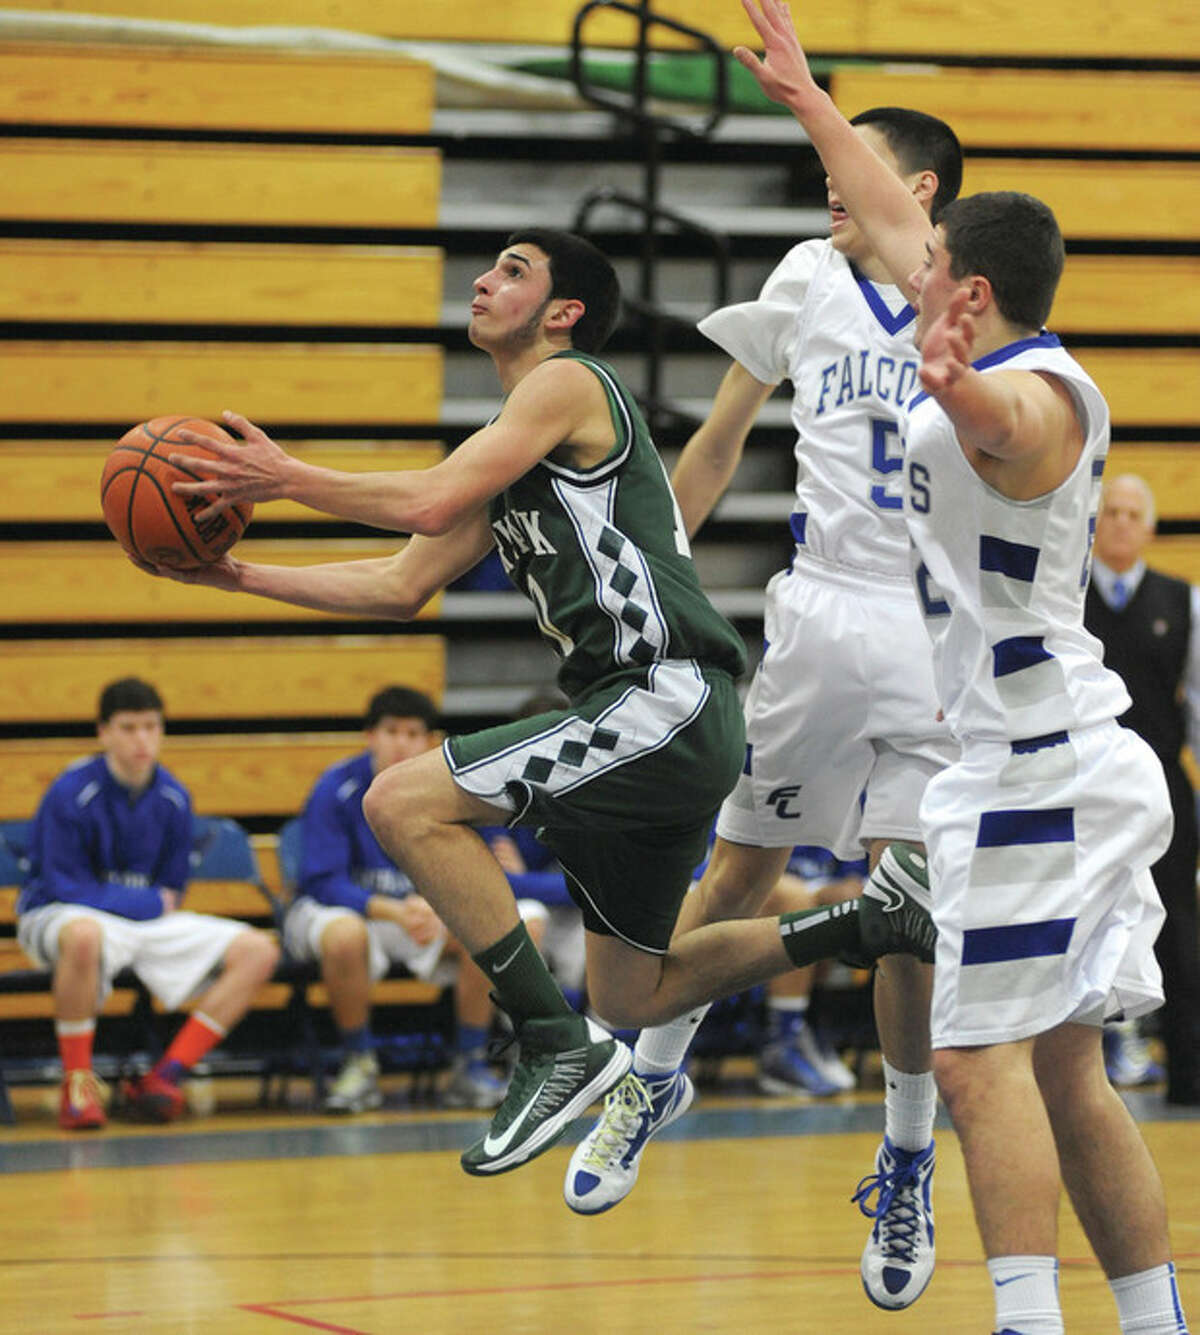 Hour photo/John Nash Norwalk's Nick Bocanfuso, left, drives between Fairfield Ludlowe's Matt Doyle (5) and Stephan Scholz (right) during the first quarter of Friday's game in Fairfield. Bocanfuso scored all 10 of his points in the first quarter to lead Norwalk to a 58-53 win.